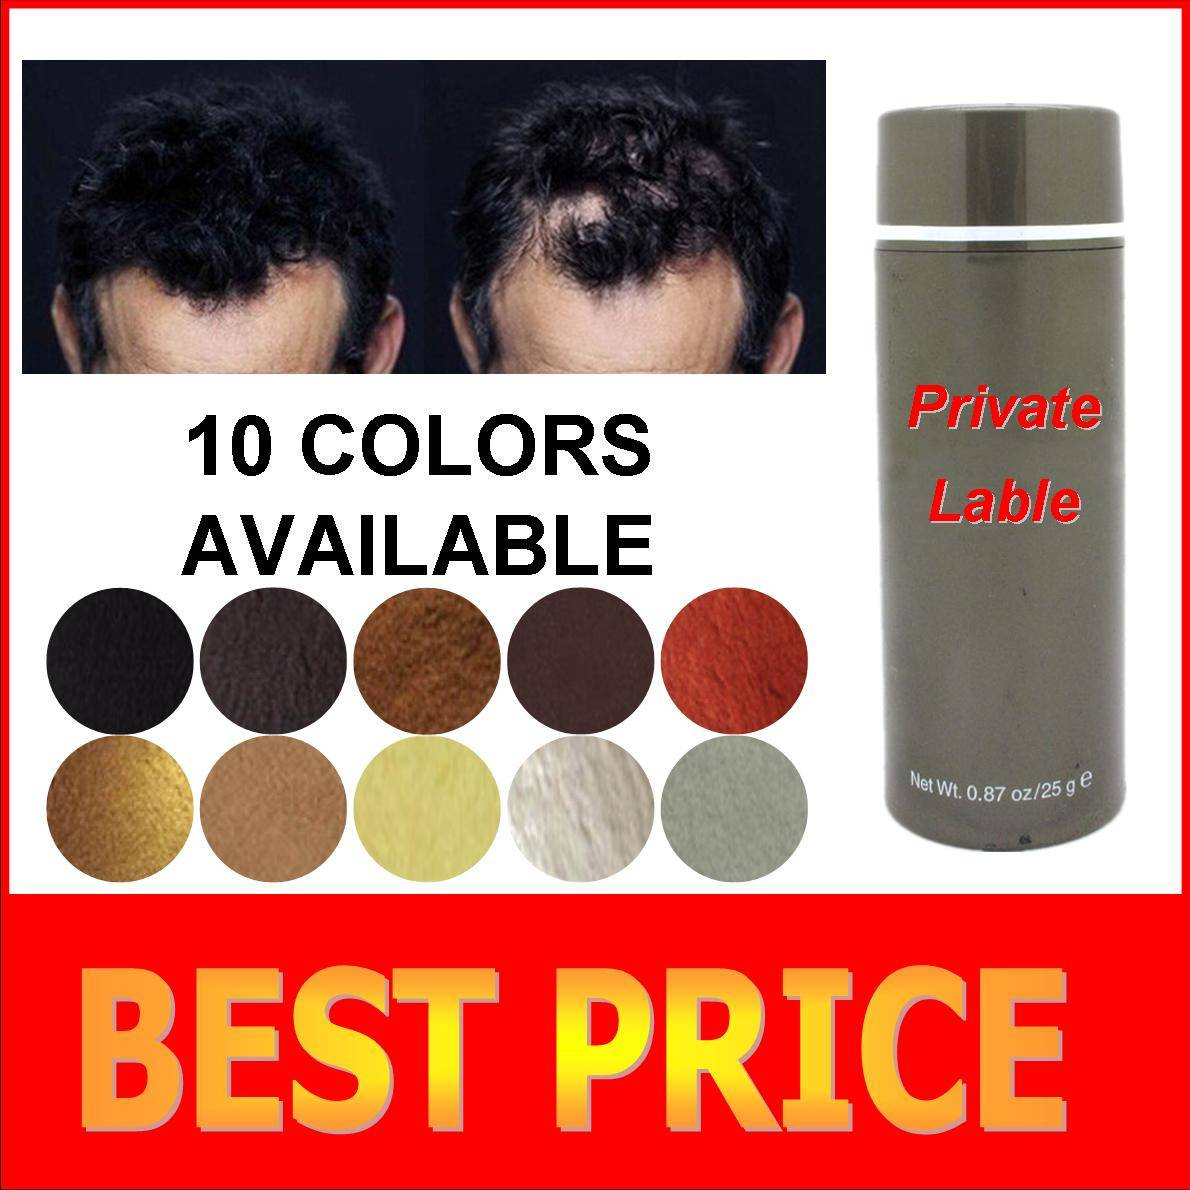 China keratin hair fiber powder hair grower solution for men and women